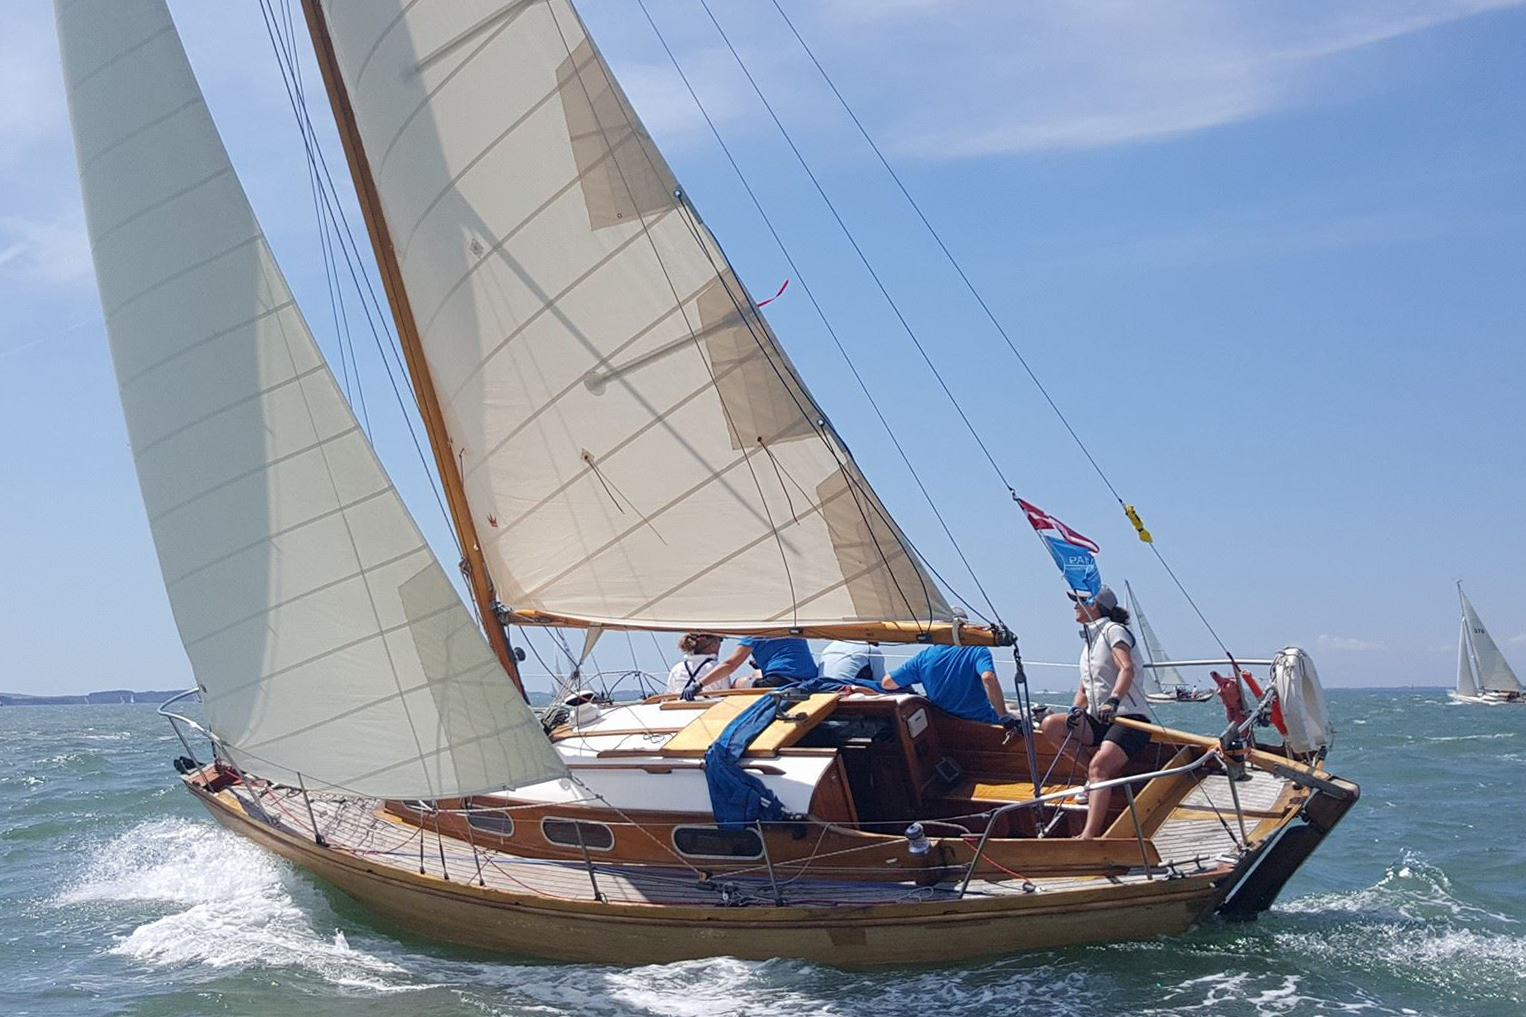 Ragdoll with Elvstrom Sails - Credit Fiona Brown